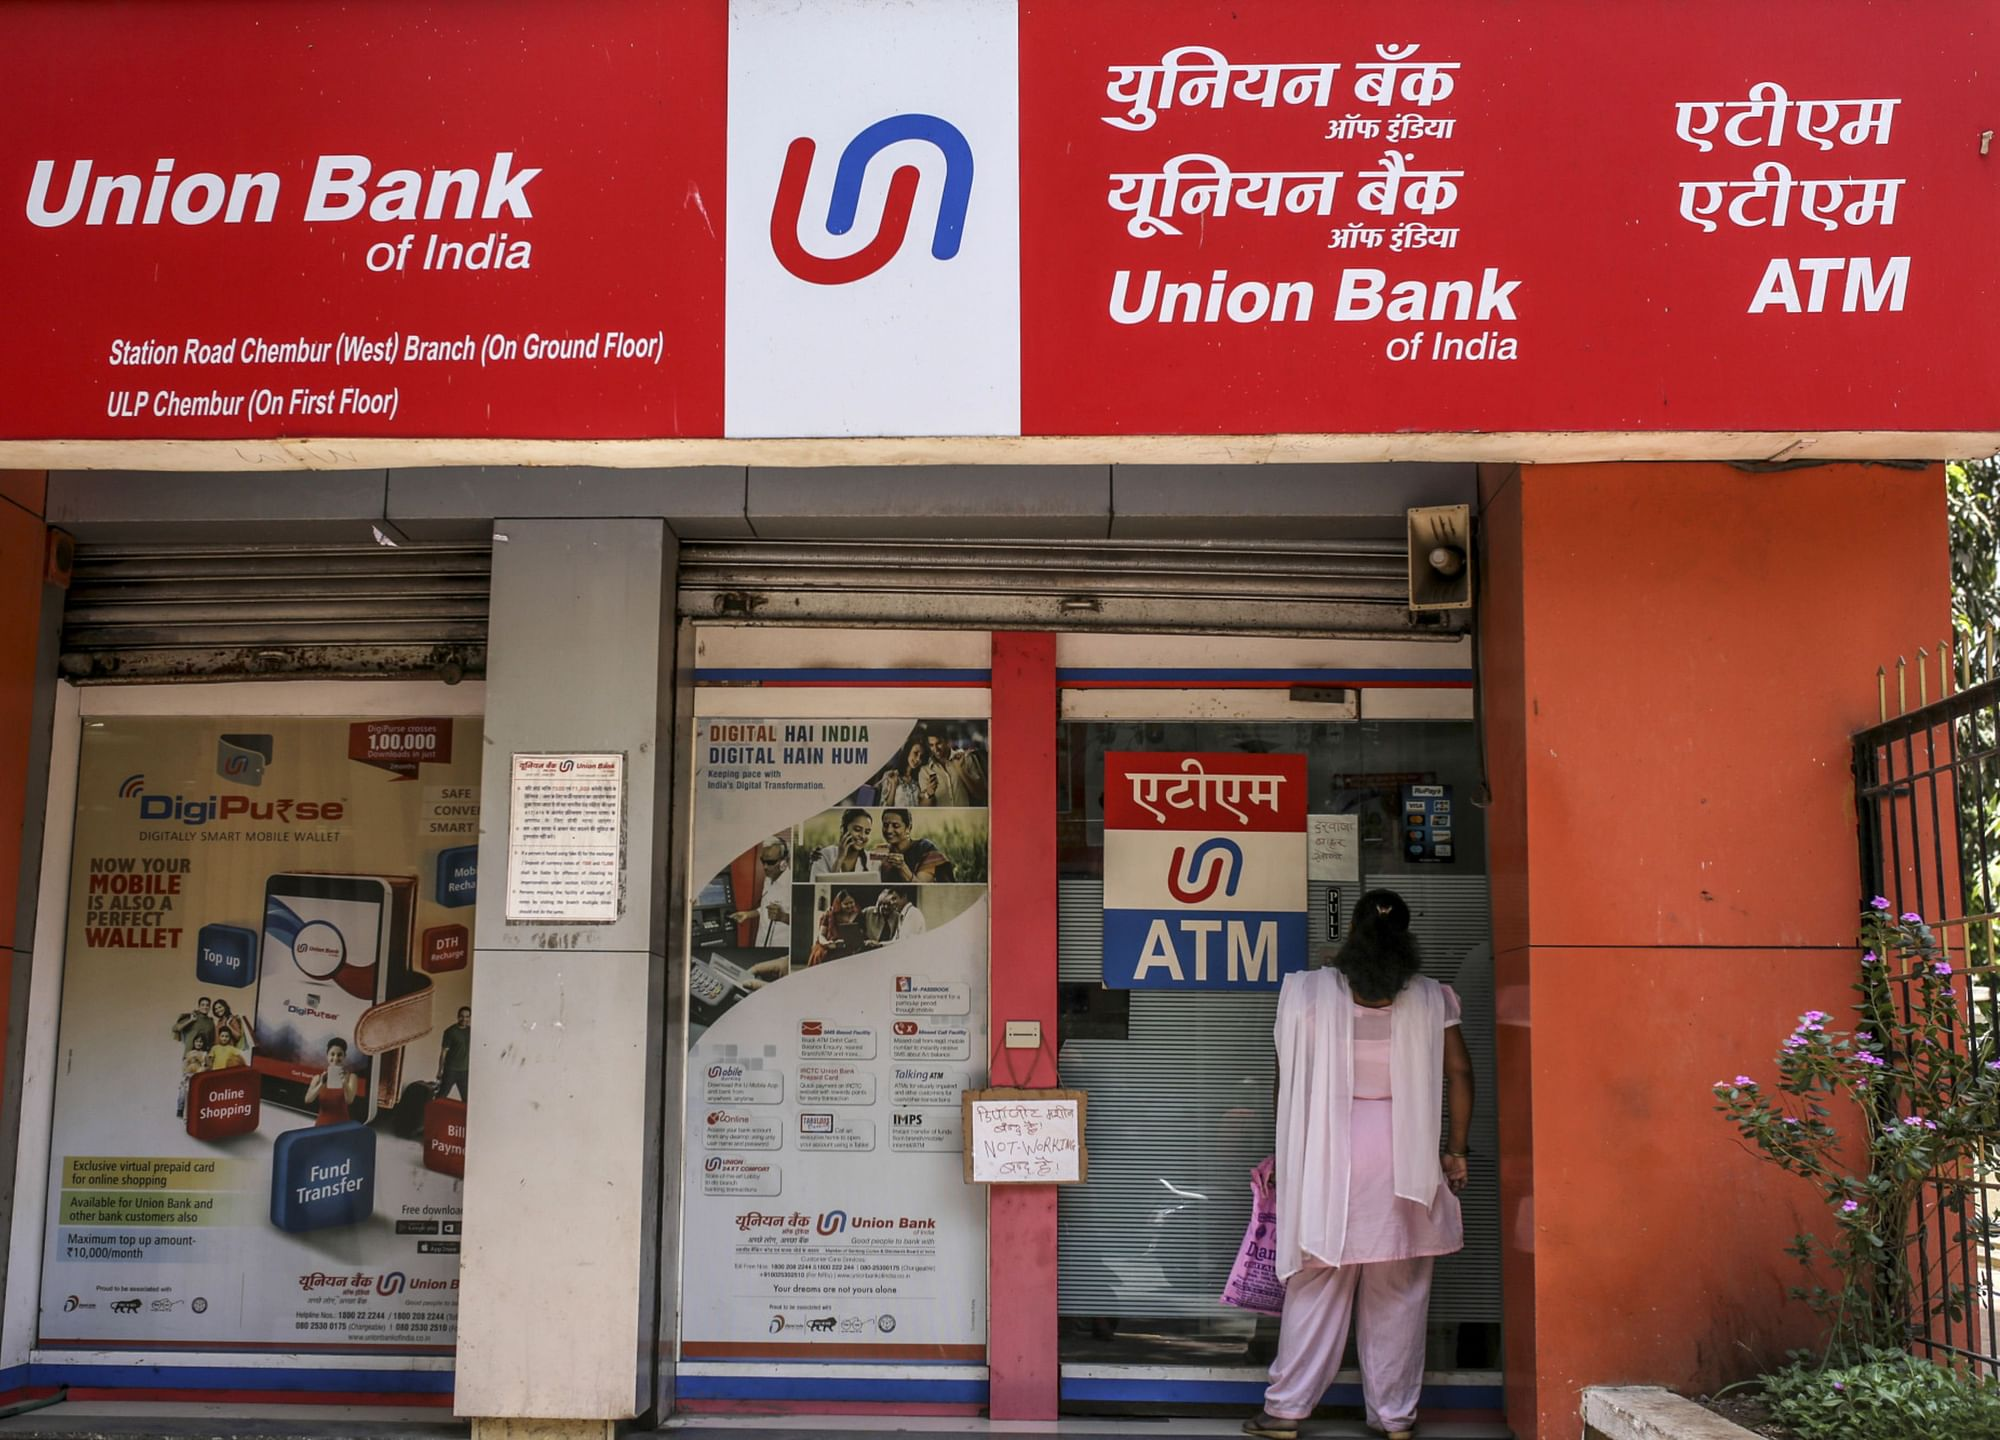 union bank of india in chembur east